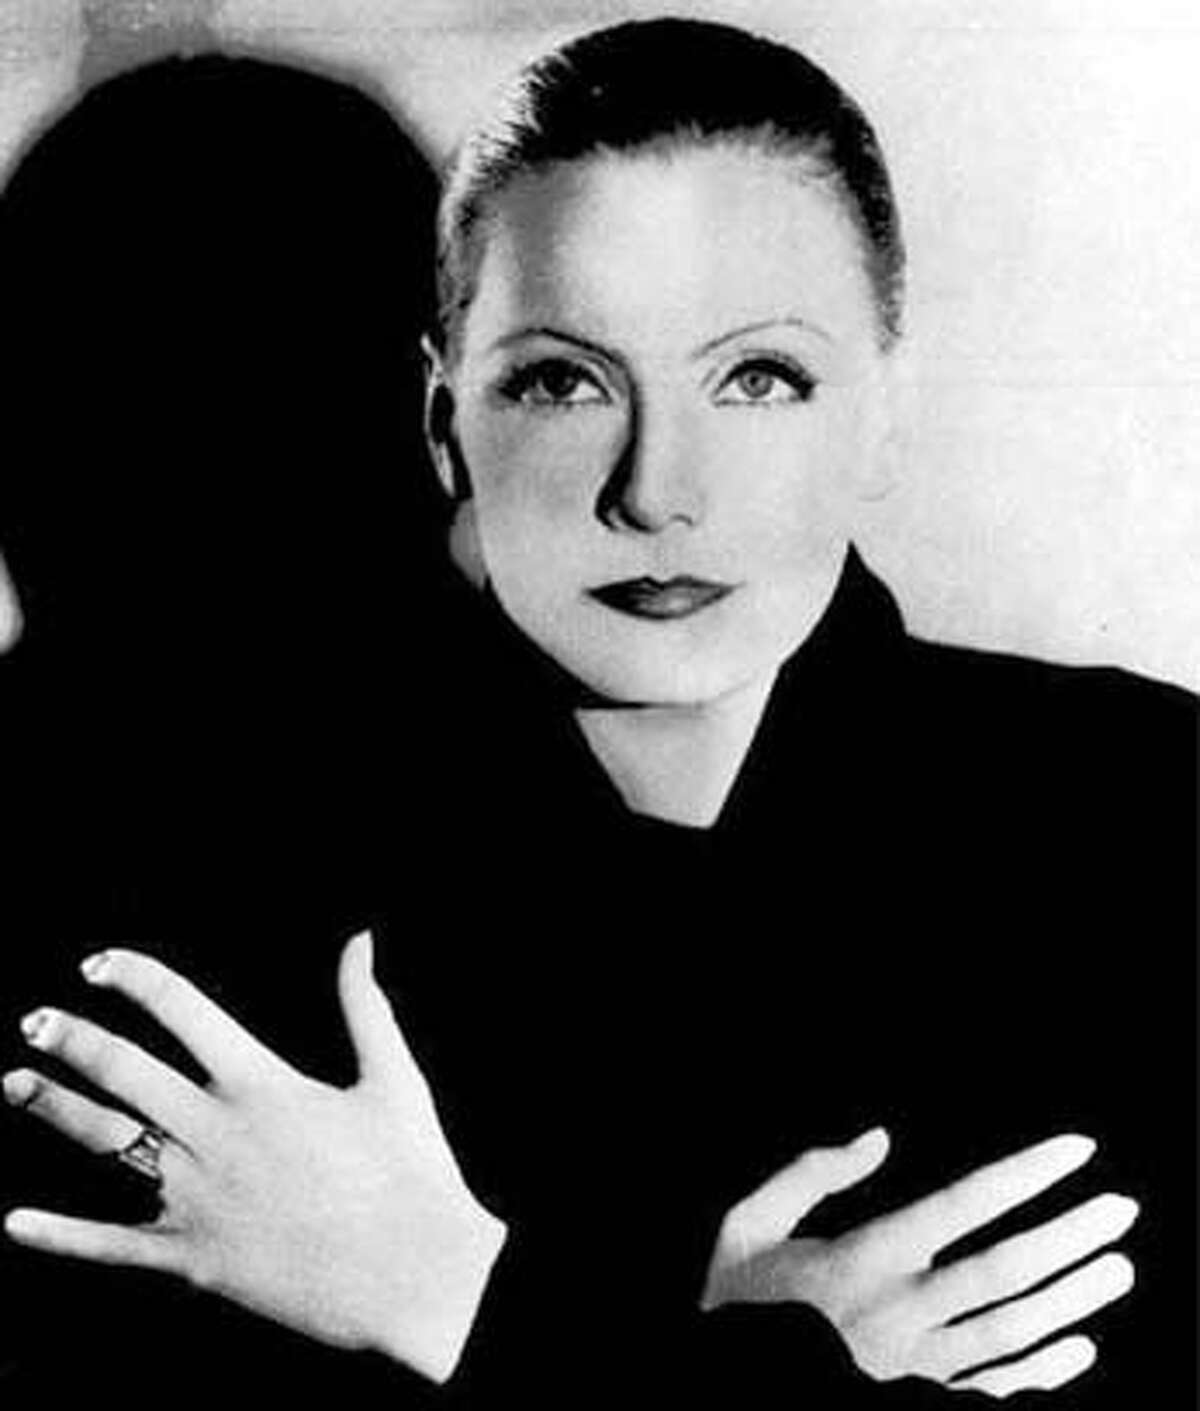 QUIT24-C-22APR03-DD-HO Shown are undated file photo,Greta Garbo. After years of a rumored love affair with Mercedes de Acosta letters from Garbo were displayed Monday, April 17, 2000, after being unsealed for the first time on Saturday, April 15, 2000 at the Rosenbach Museum and Library in Philadelphia. The 113 items that included letters, flower notes, telegrams, photos and poems chronicled a 28-year friendship of ups and downs, but gave no explicit evidence of a lesbian relationship between the two. (AP Photo/Acosta- Rosenbach Museum and Library, ho; Garbo- AP file photo) ALSO RAN 04/24/03, 03/28/2004 (dd) Buster Keaton: not smiling, still funny. CAT